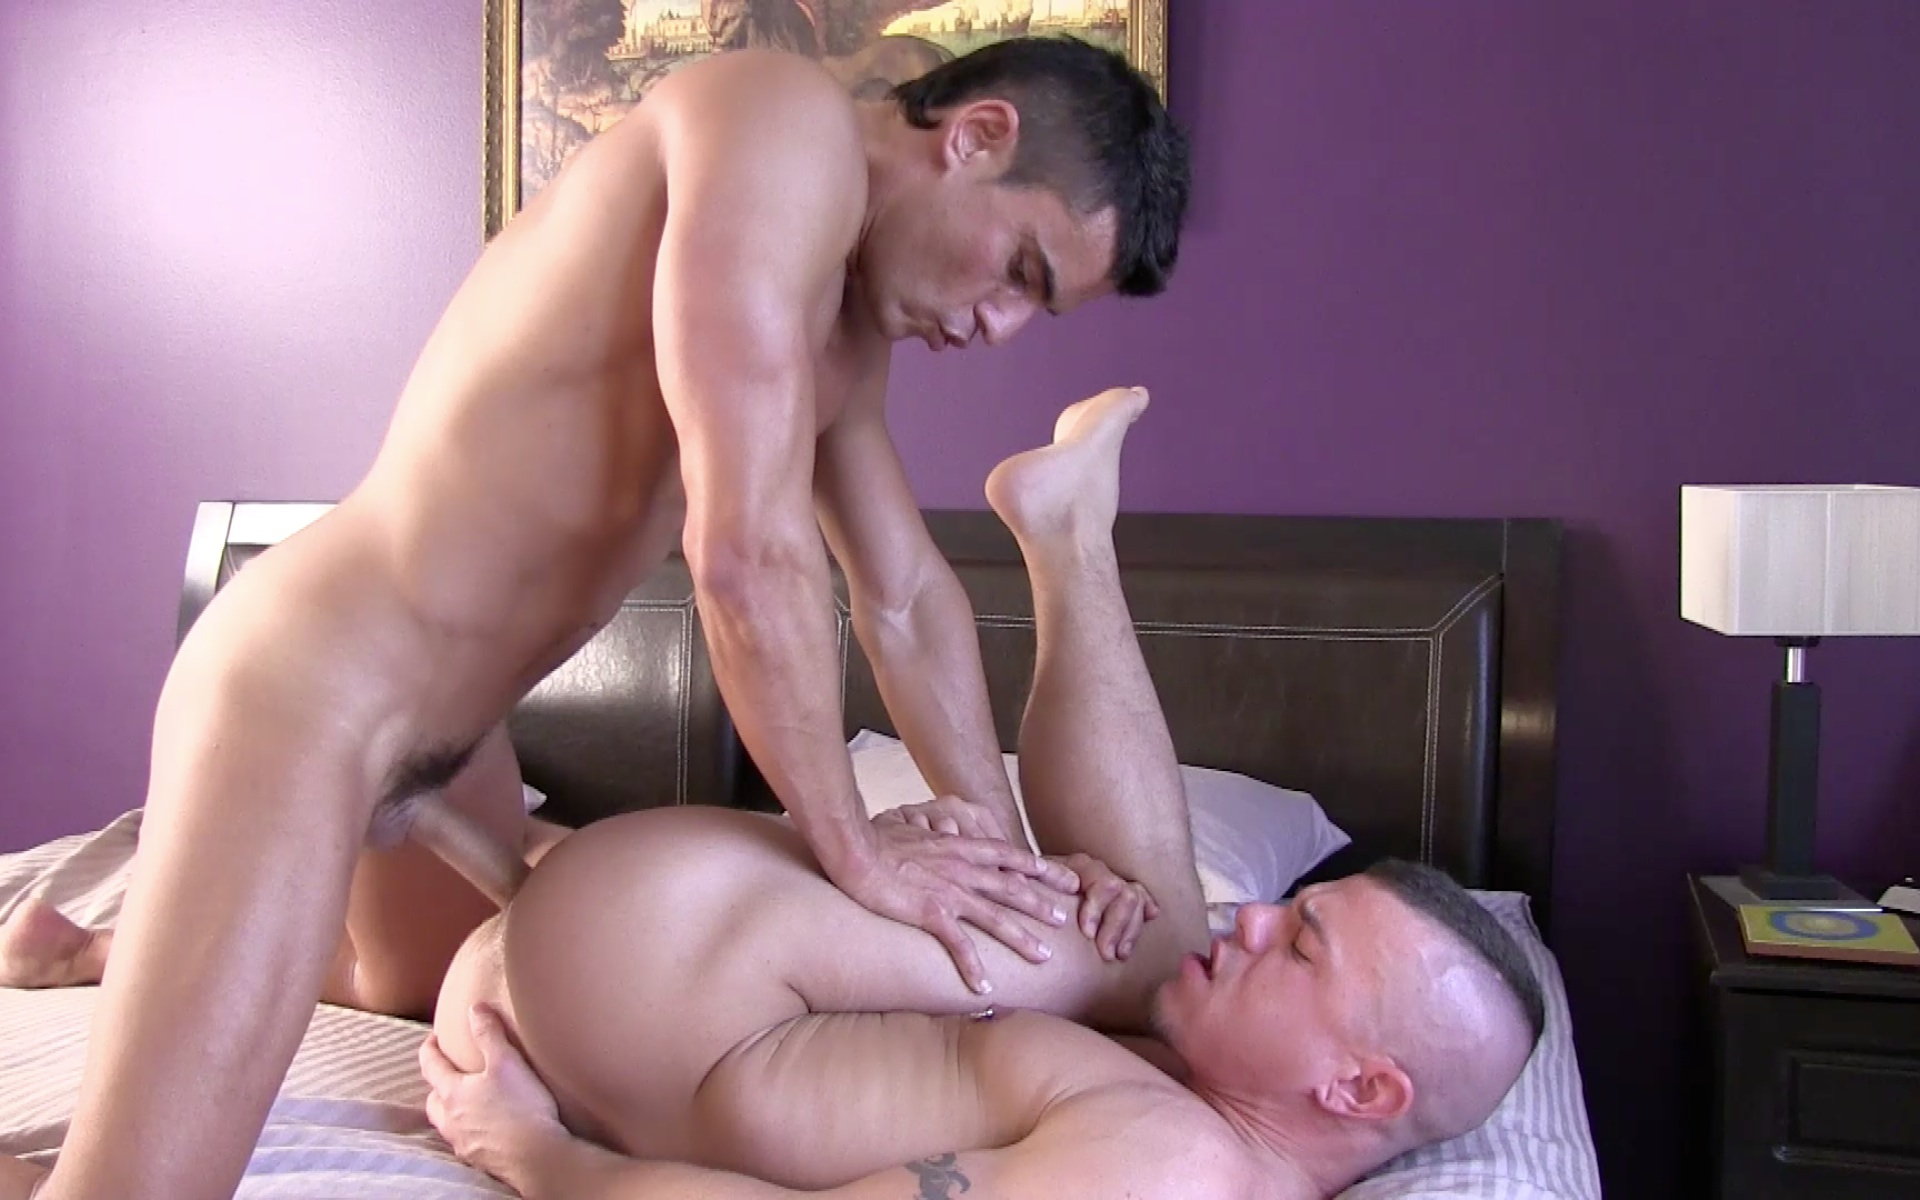 Raw Fuck Club Rafael Carreras and Jesse Santana Cuban bareback breeding Amateur Gay Porn 3 Rafael Carreras and Jesse Santana: Big Cock Cuban Barebacks His Buddy